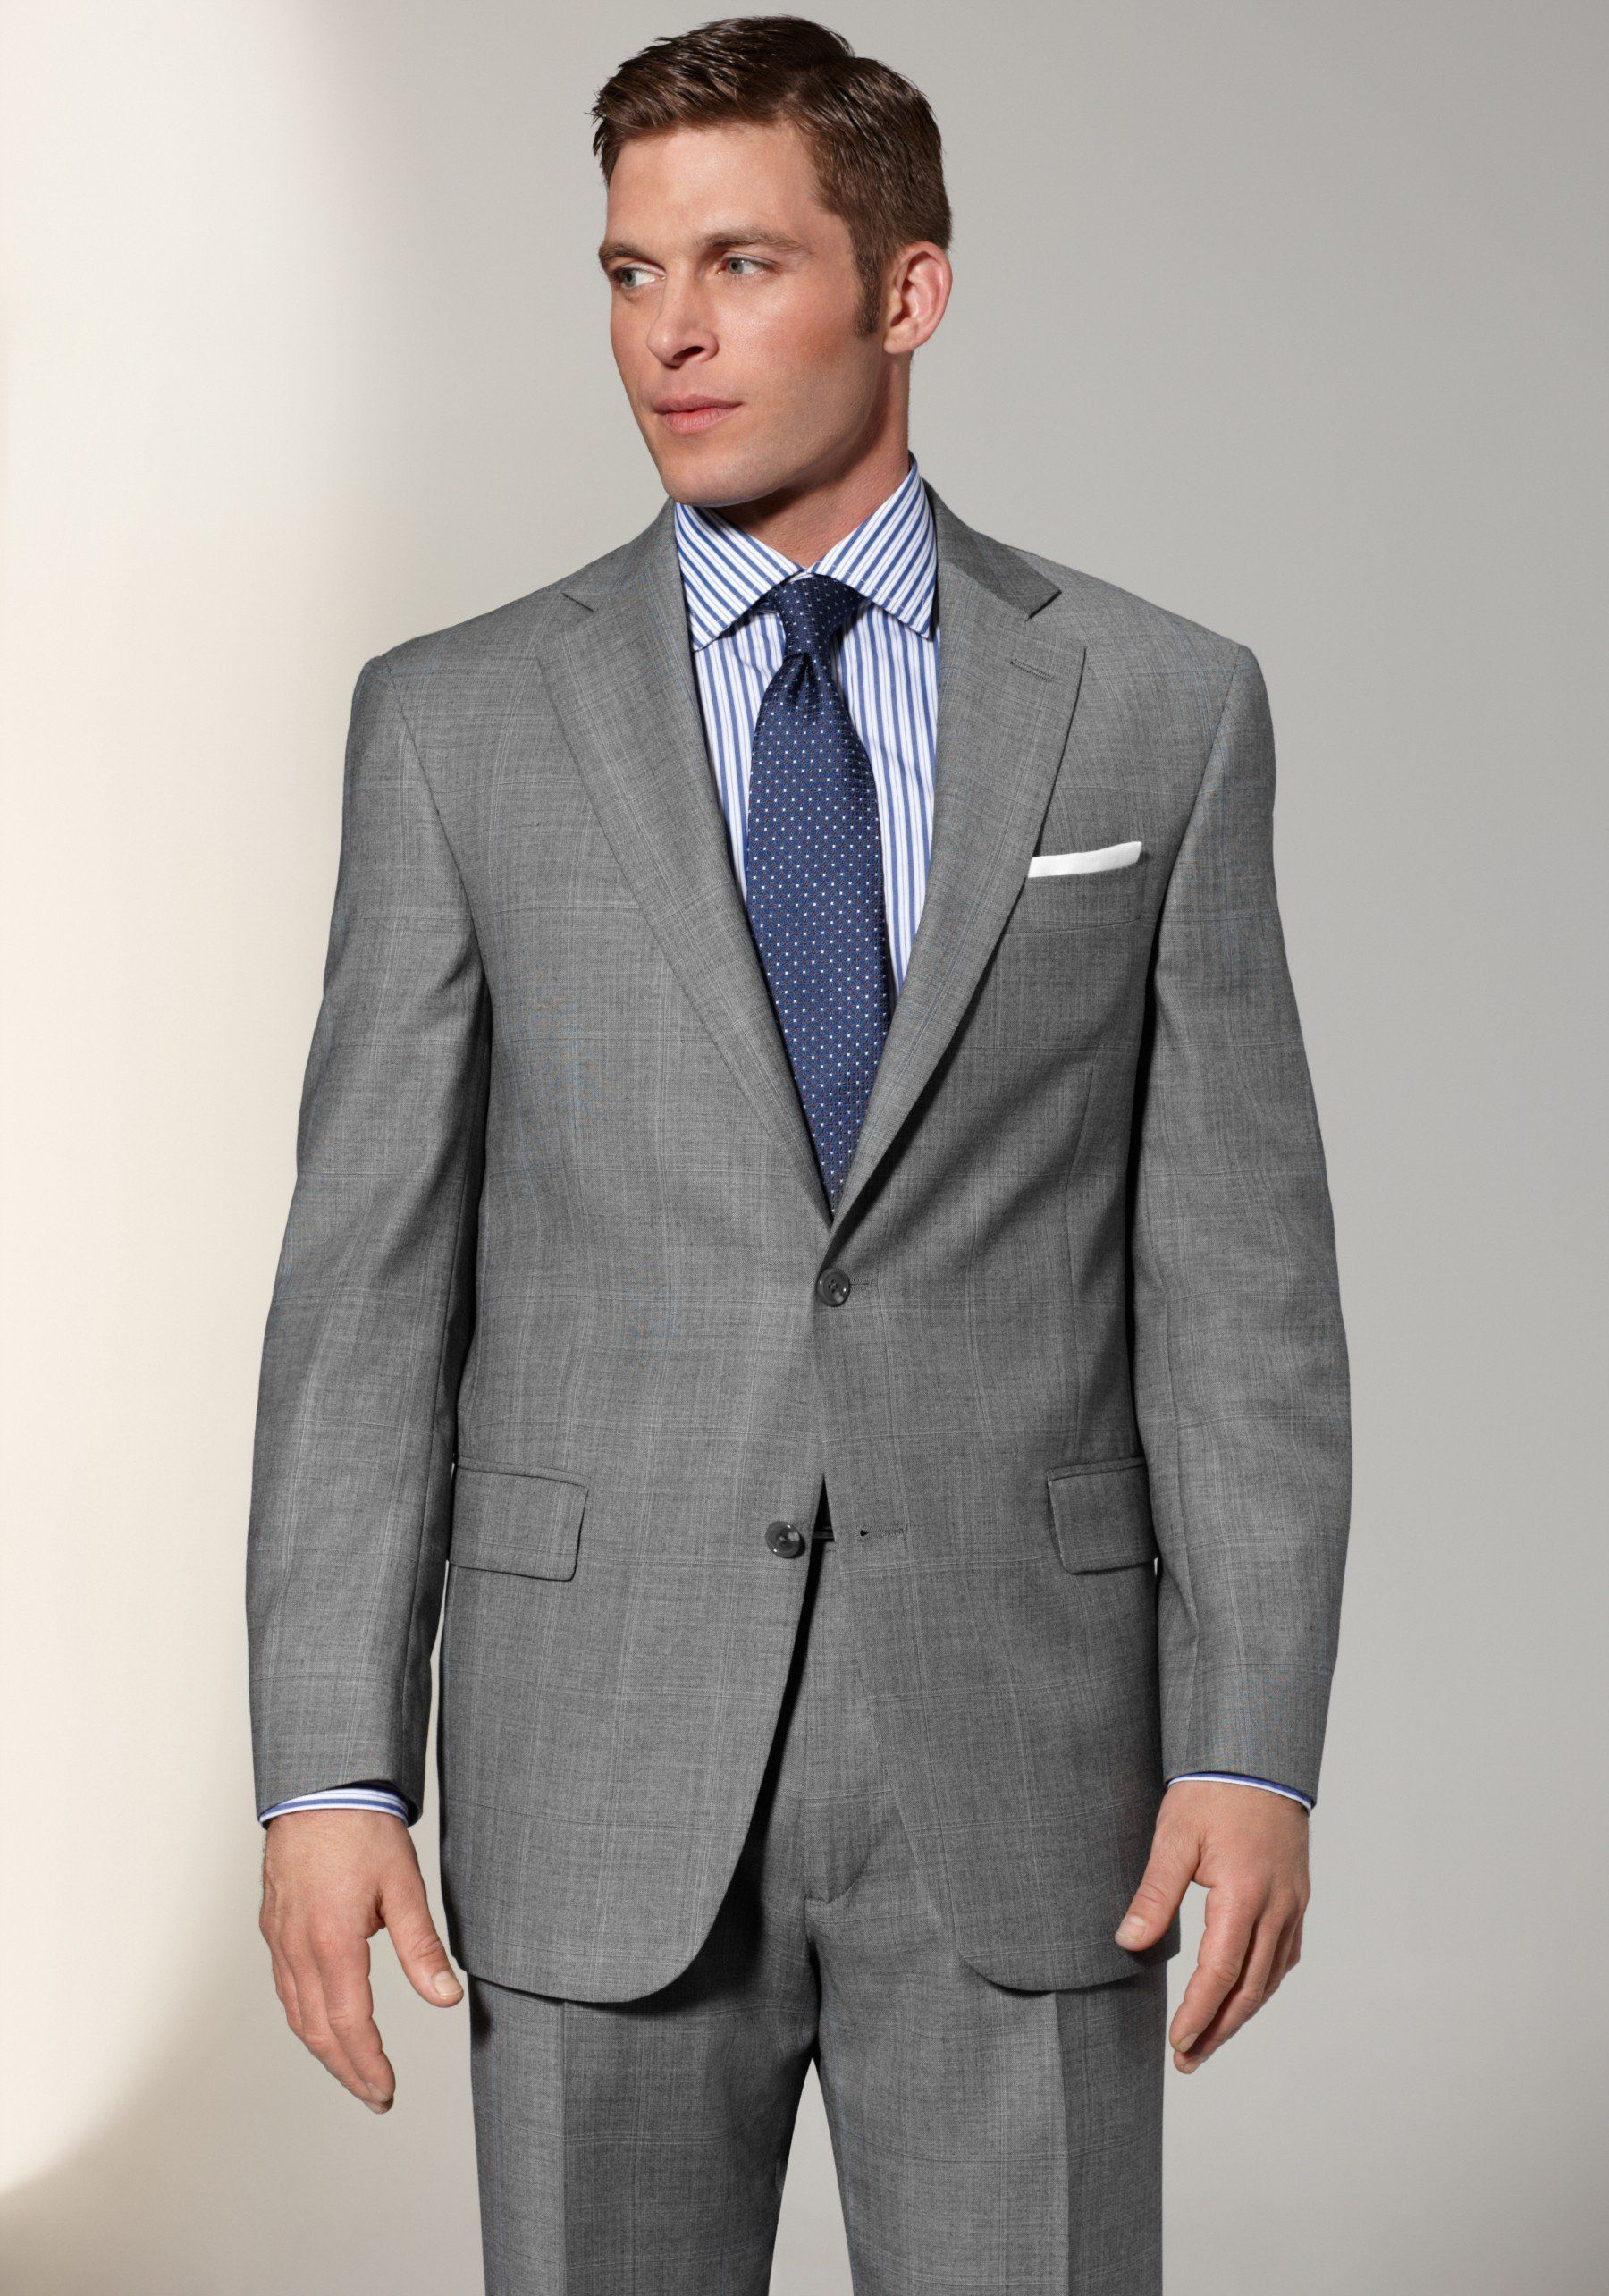 grey suit blue shirt and blue tie | lazy wedding planning | Pinterest